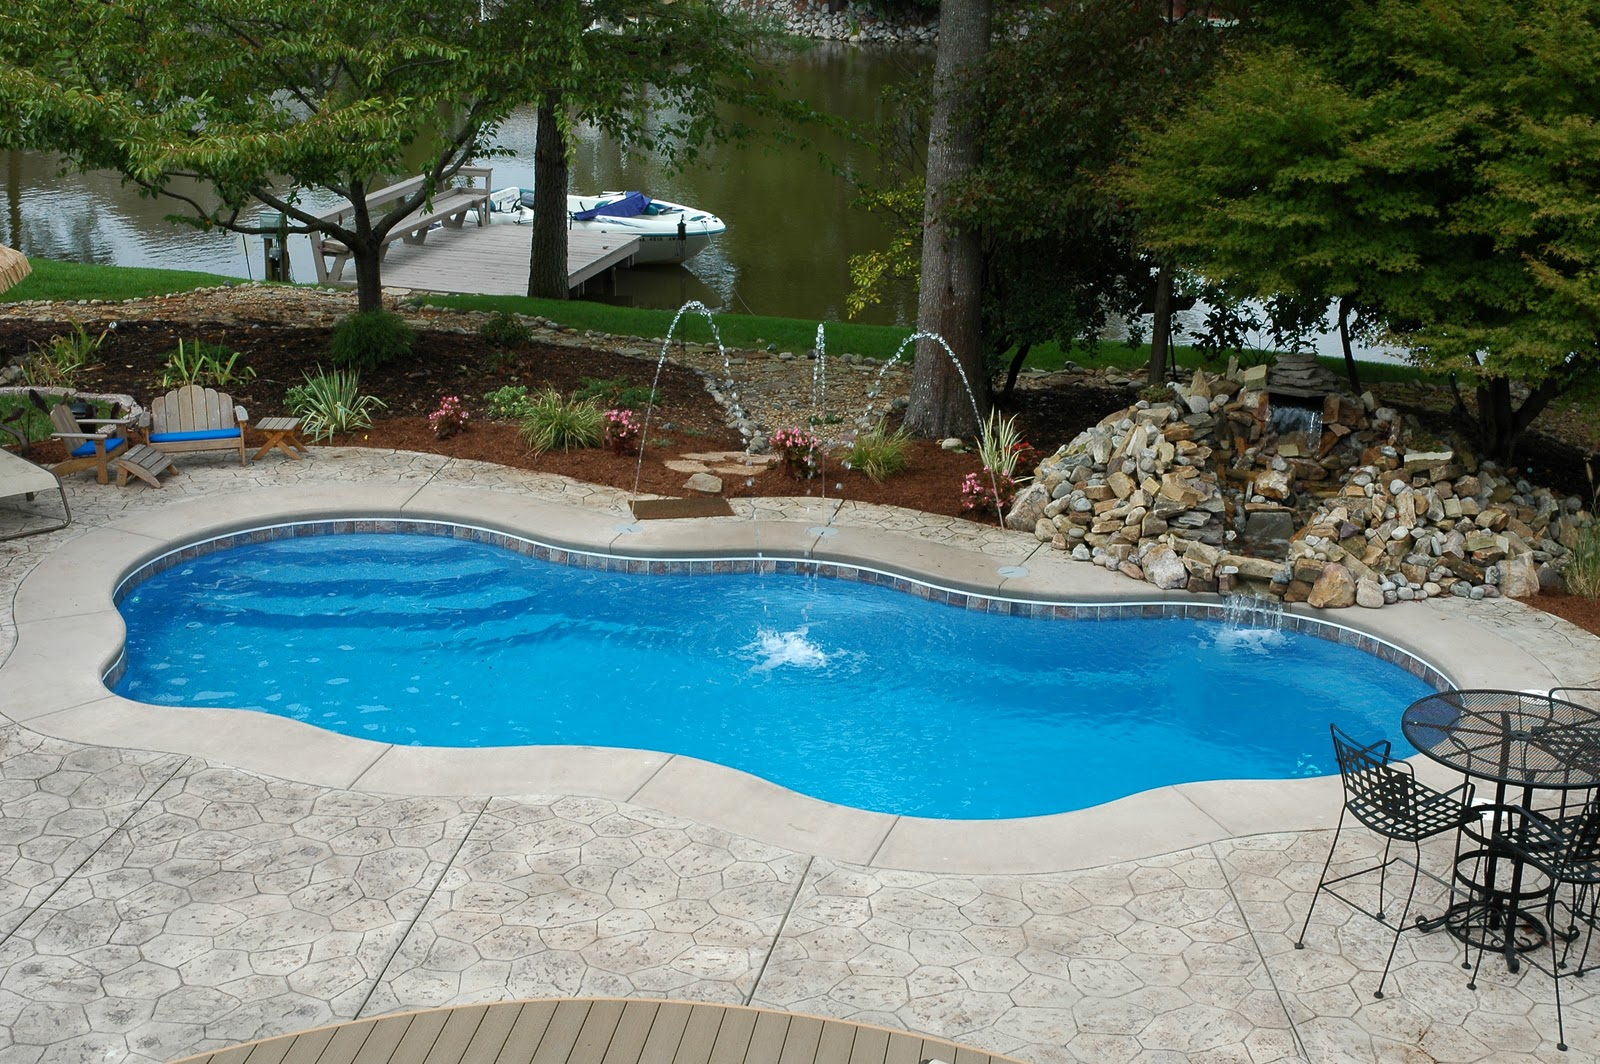 Start Off The New Year With A Viking Pool Viking Pools Offers So Many